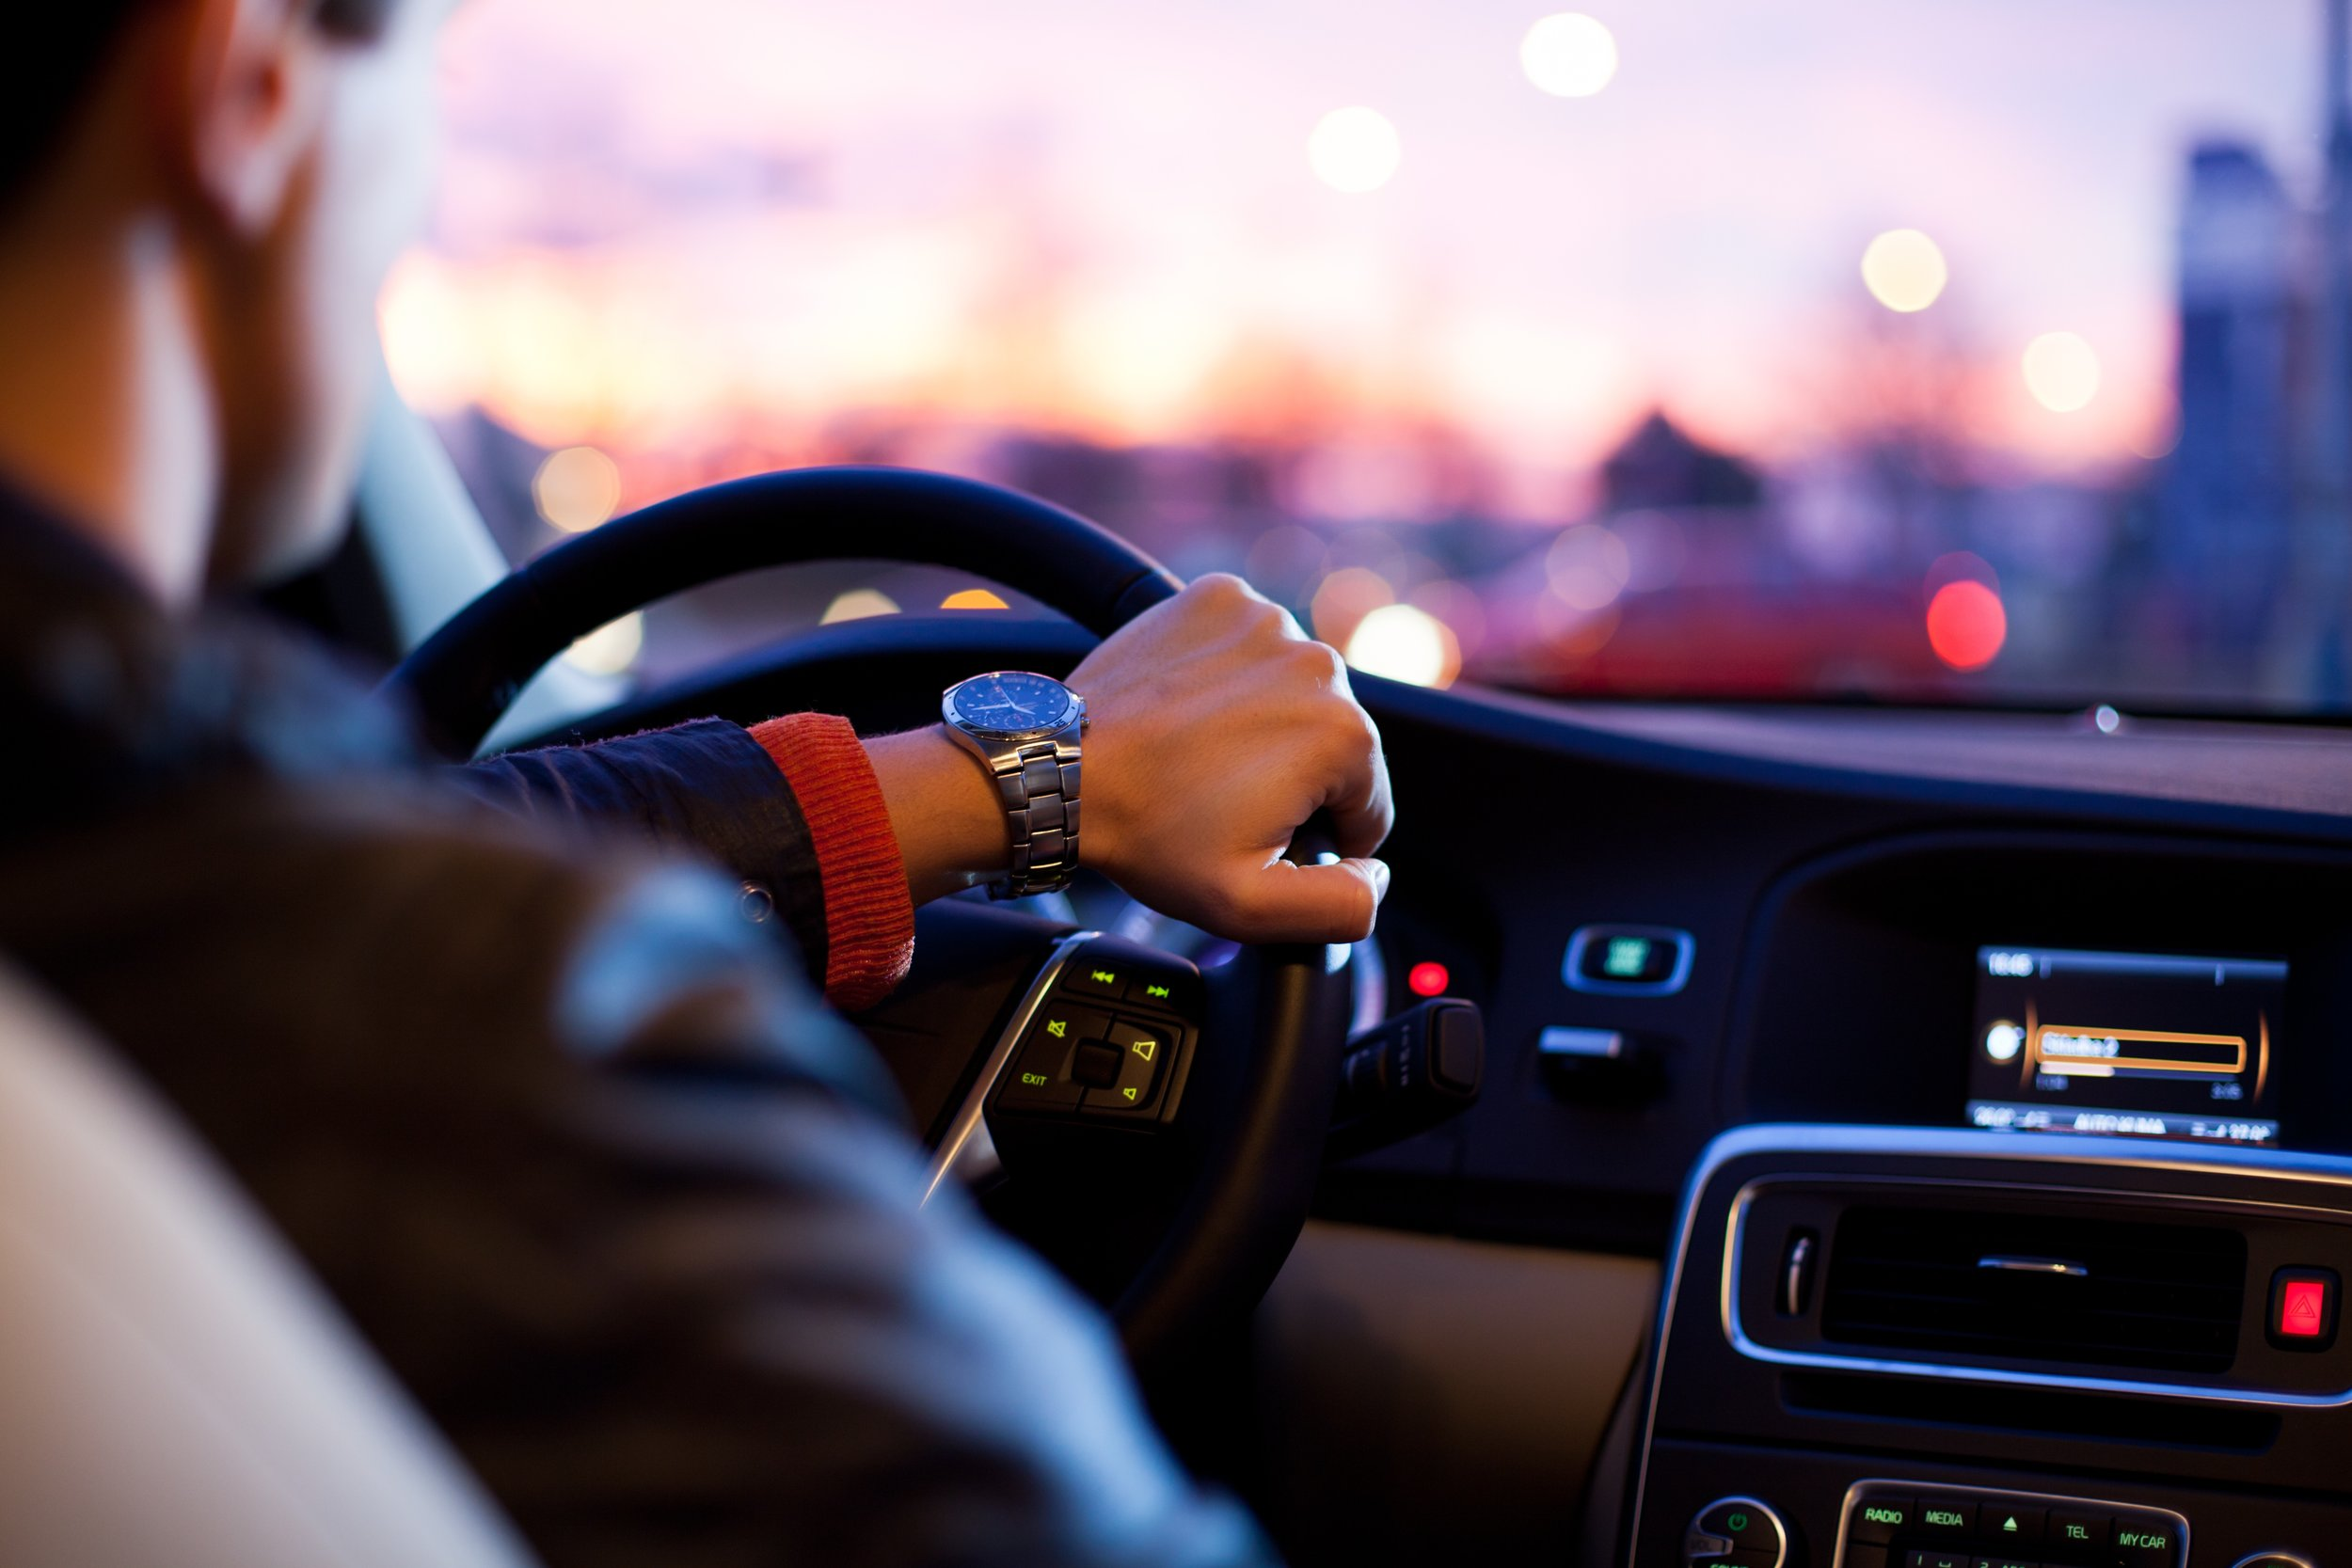 Hired/Non-Owned Auto Liability - This coverage will protect your business from automobile related claims, but does not cover the driver or physical damages to the vehicle.